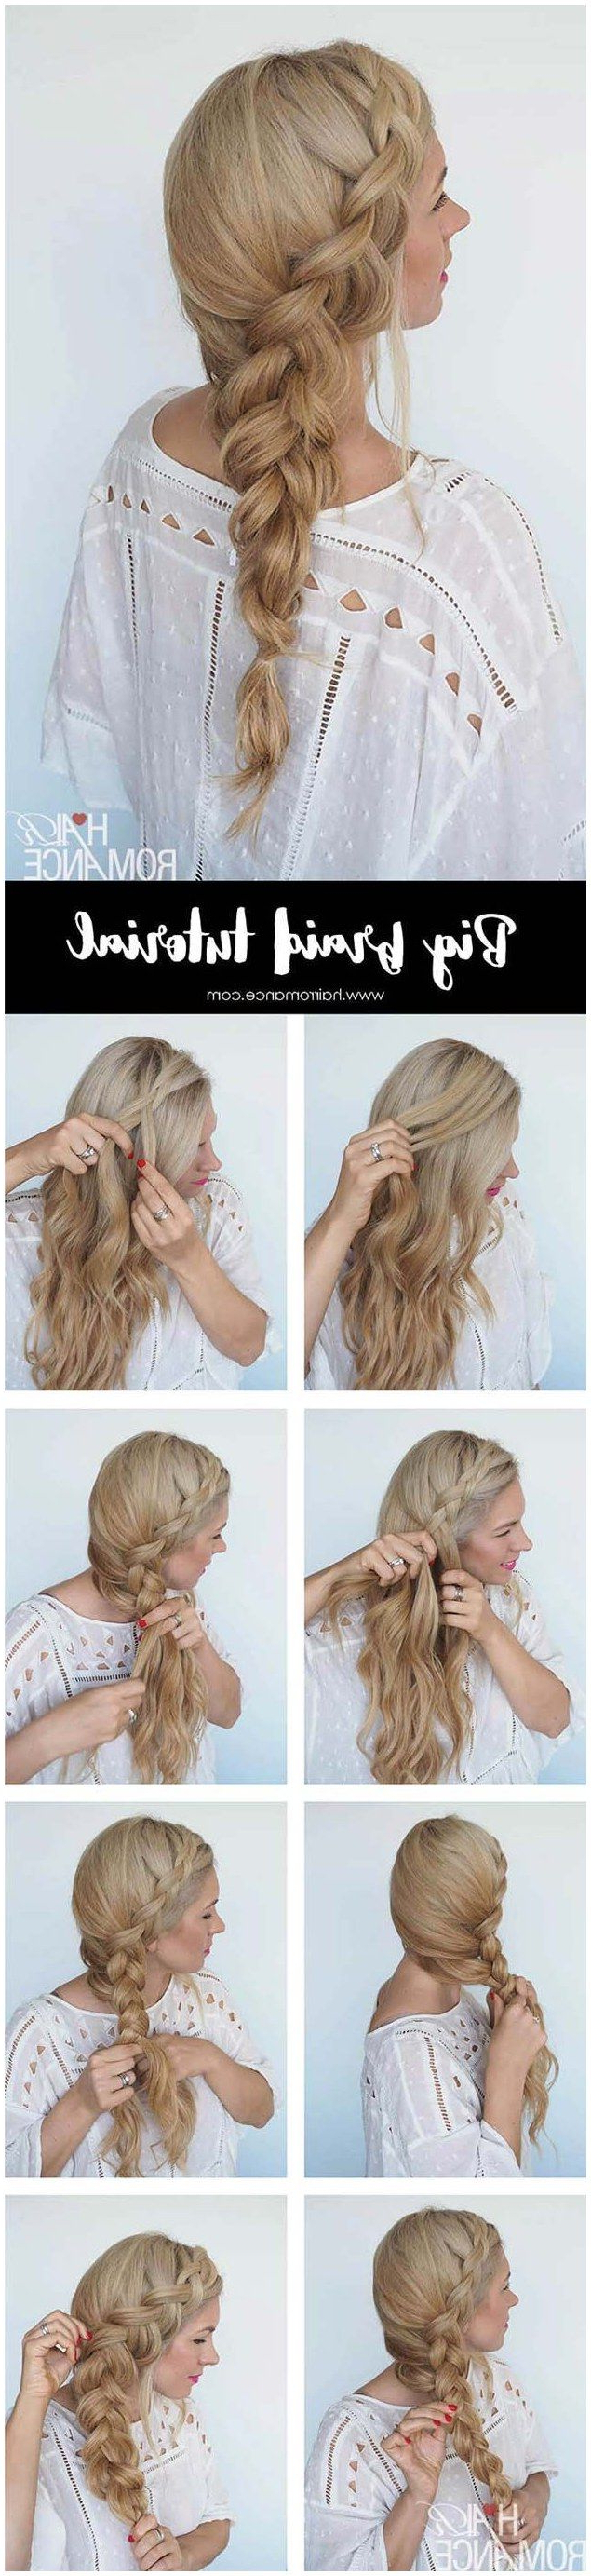 Recent Mermaid Fishtail Hairstyles With Hair Flowers For Best Hair Braiding Tutorials – Big Braid Instant Mermaid (View 3 of 20)